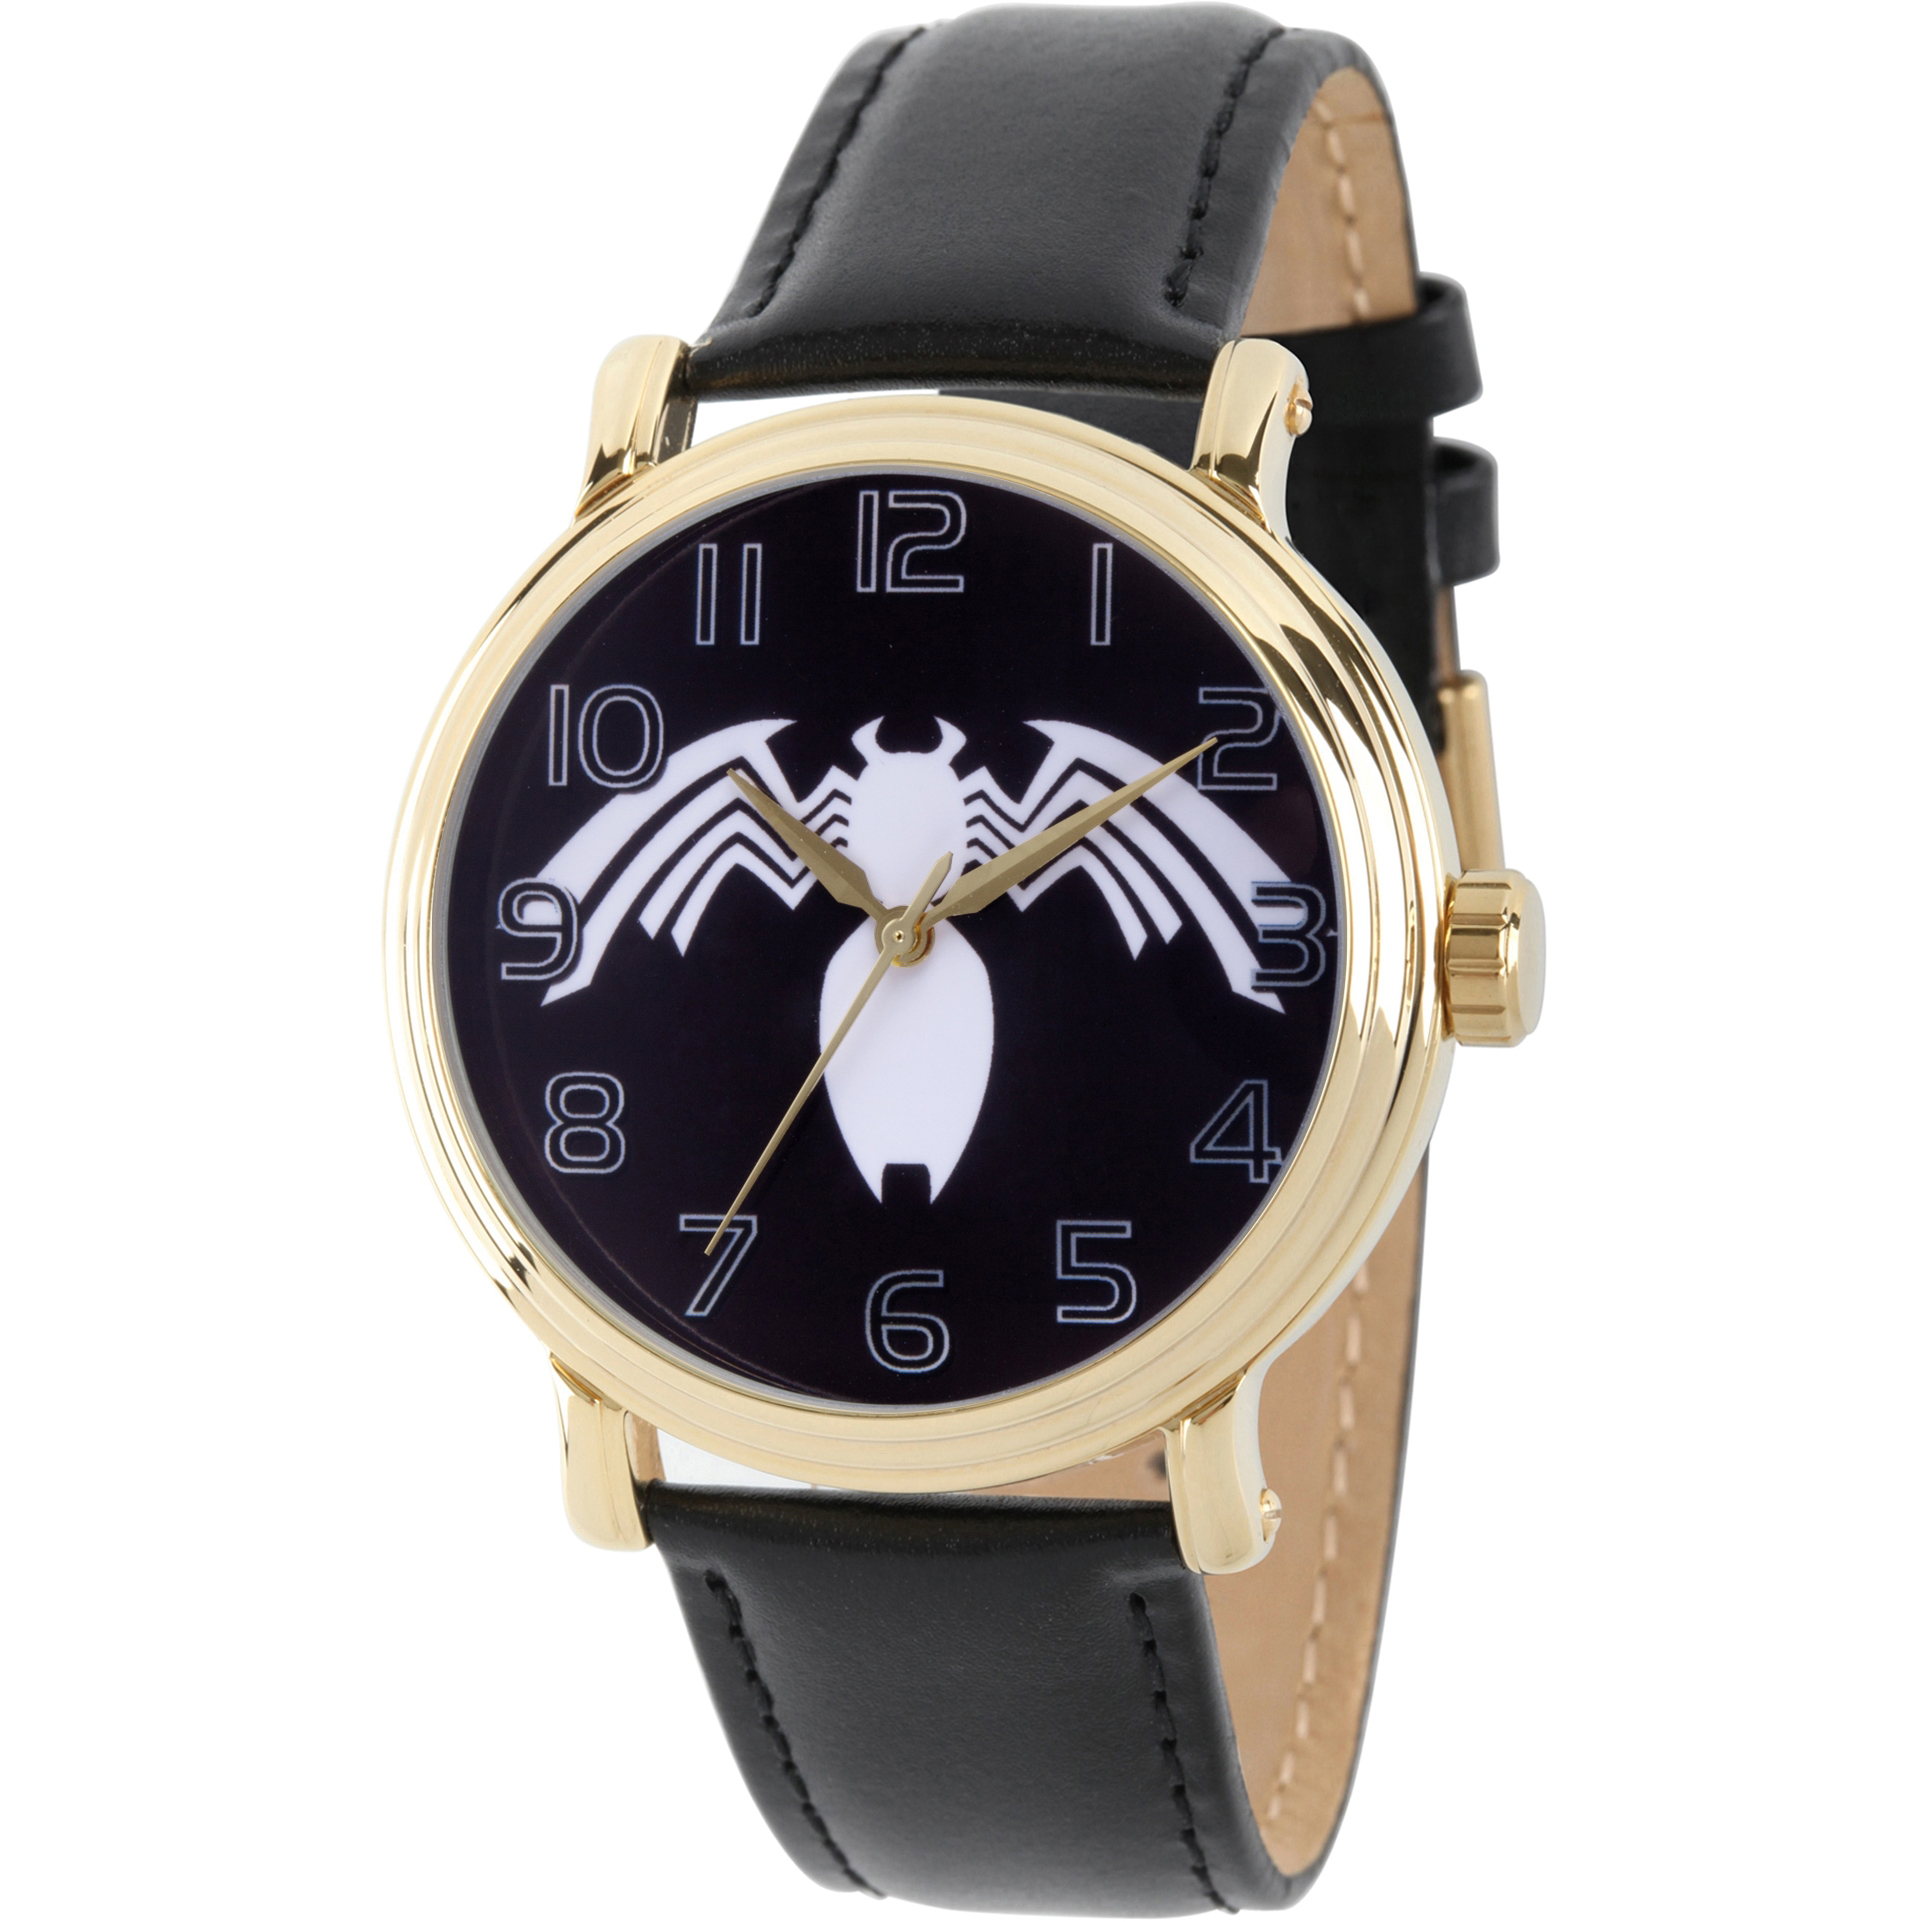 Spider-Man Venom Men's Gold Alloy Vintage Watch, Black Leather Strap